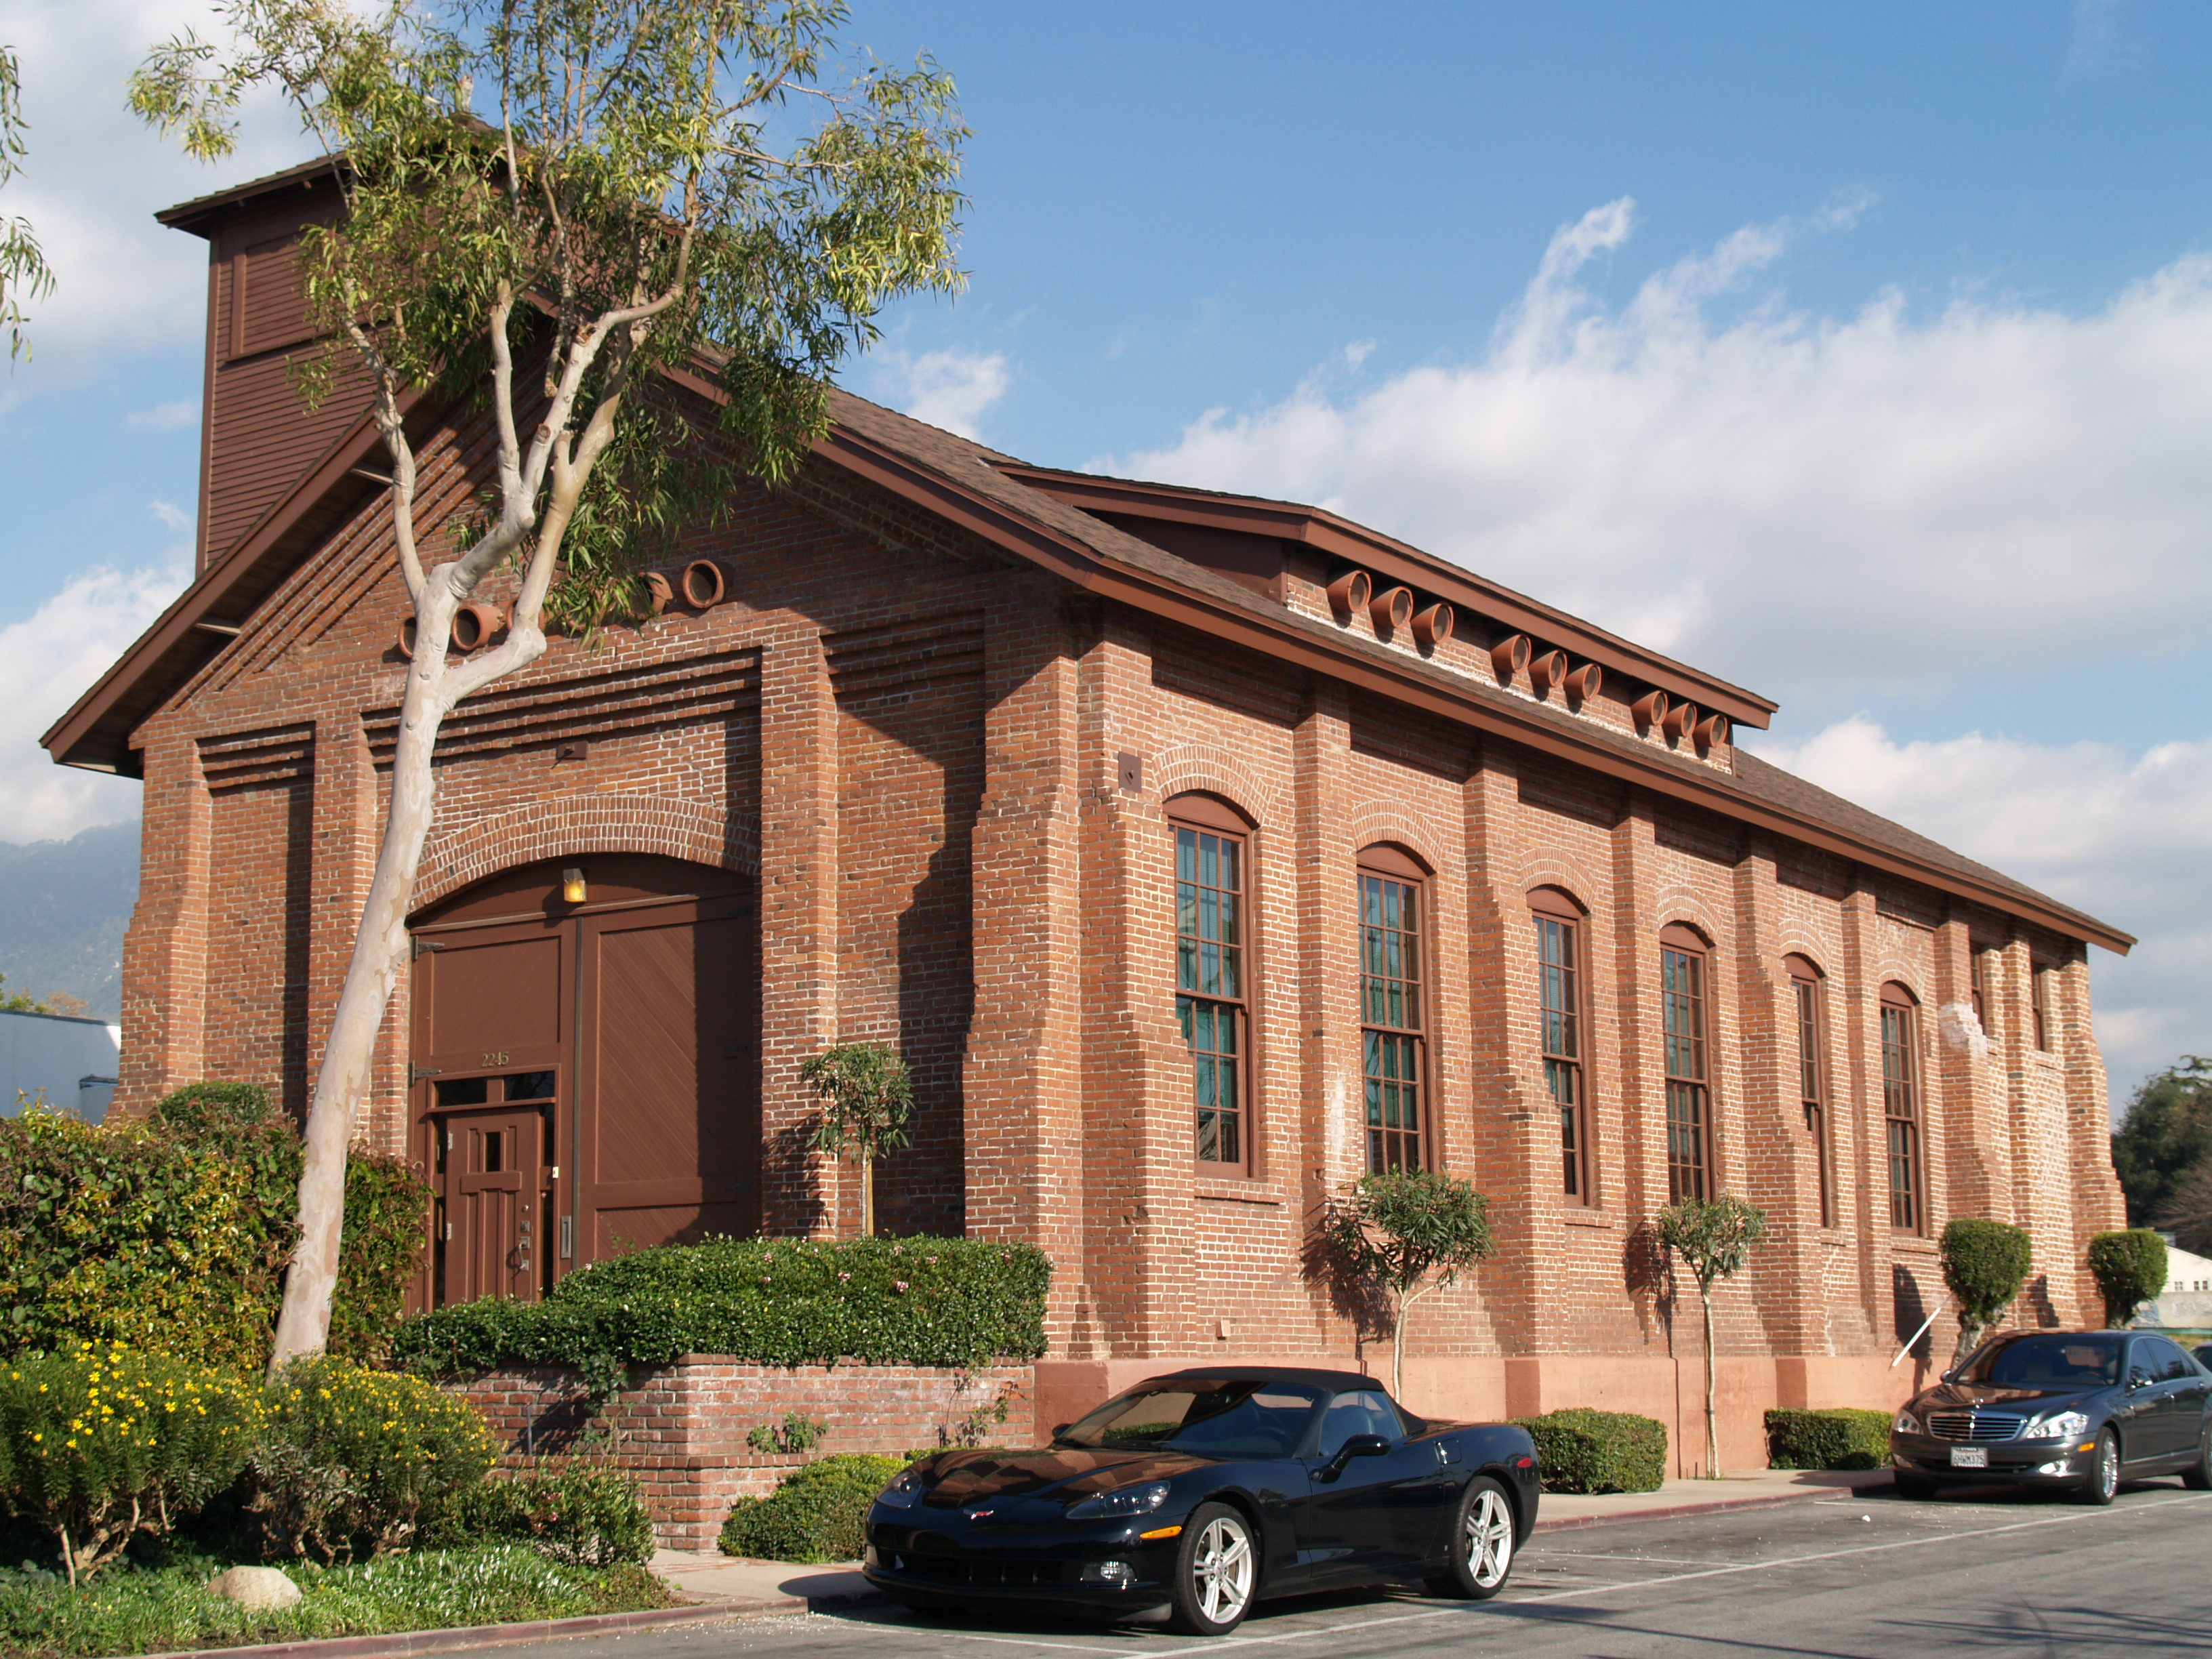 File:Pacific Electric Railway Company Substation No. 8.JPG - Wikimedia ... Pacific Railway Company